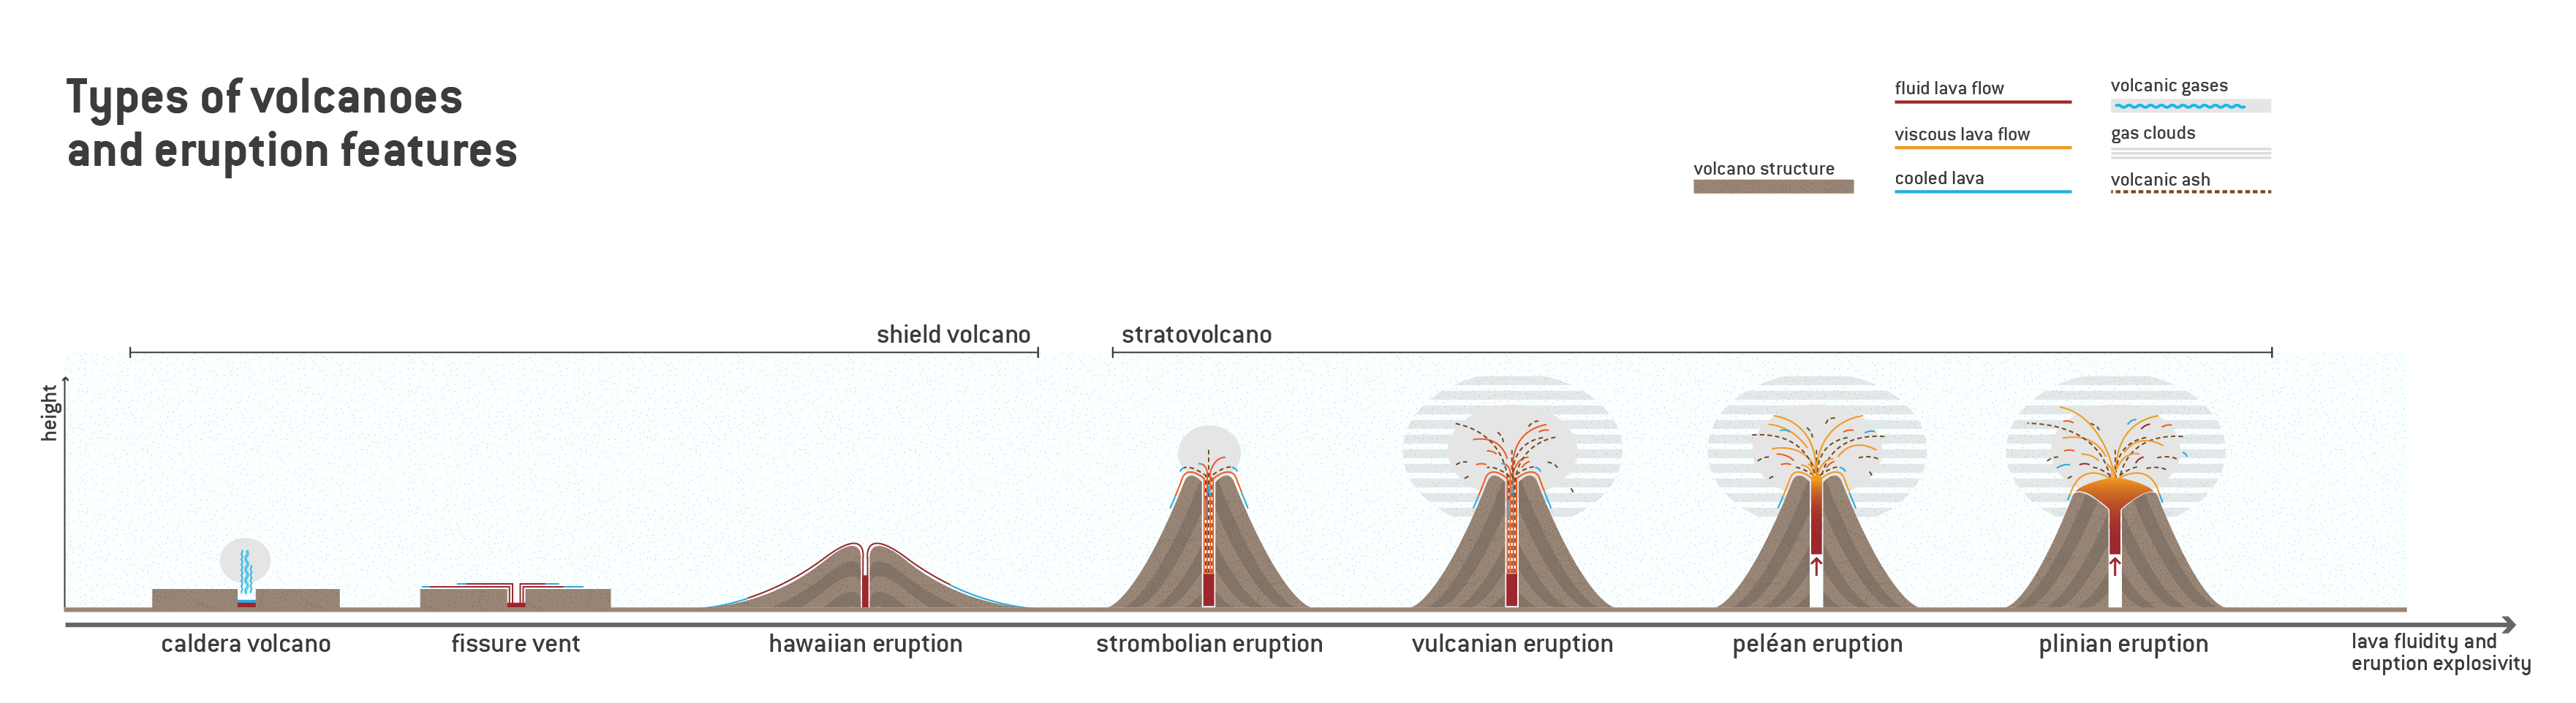 File Types Of Volcanoes And Eruption Features